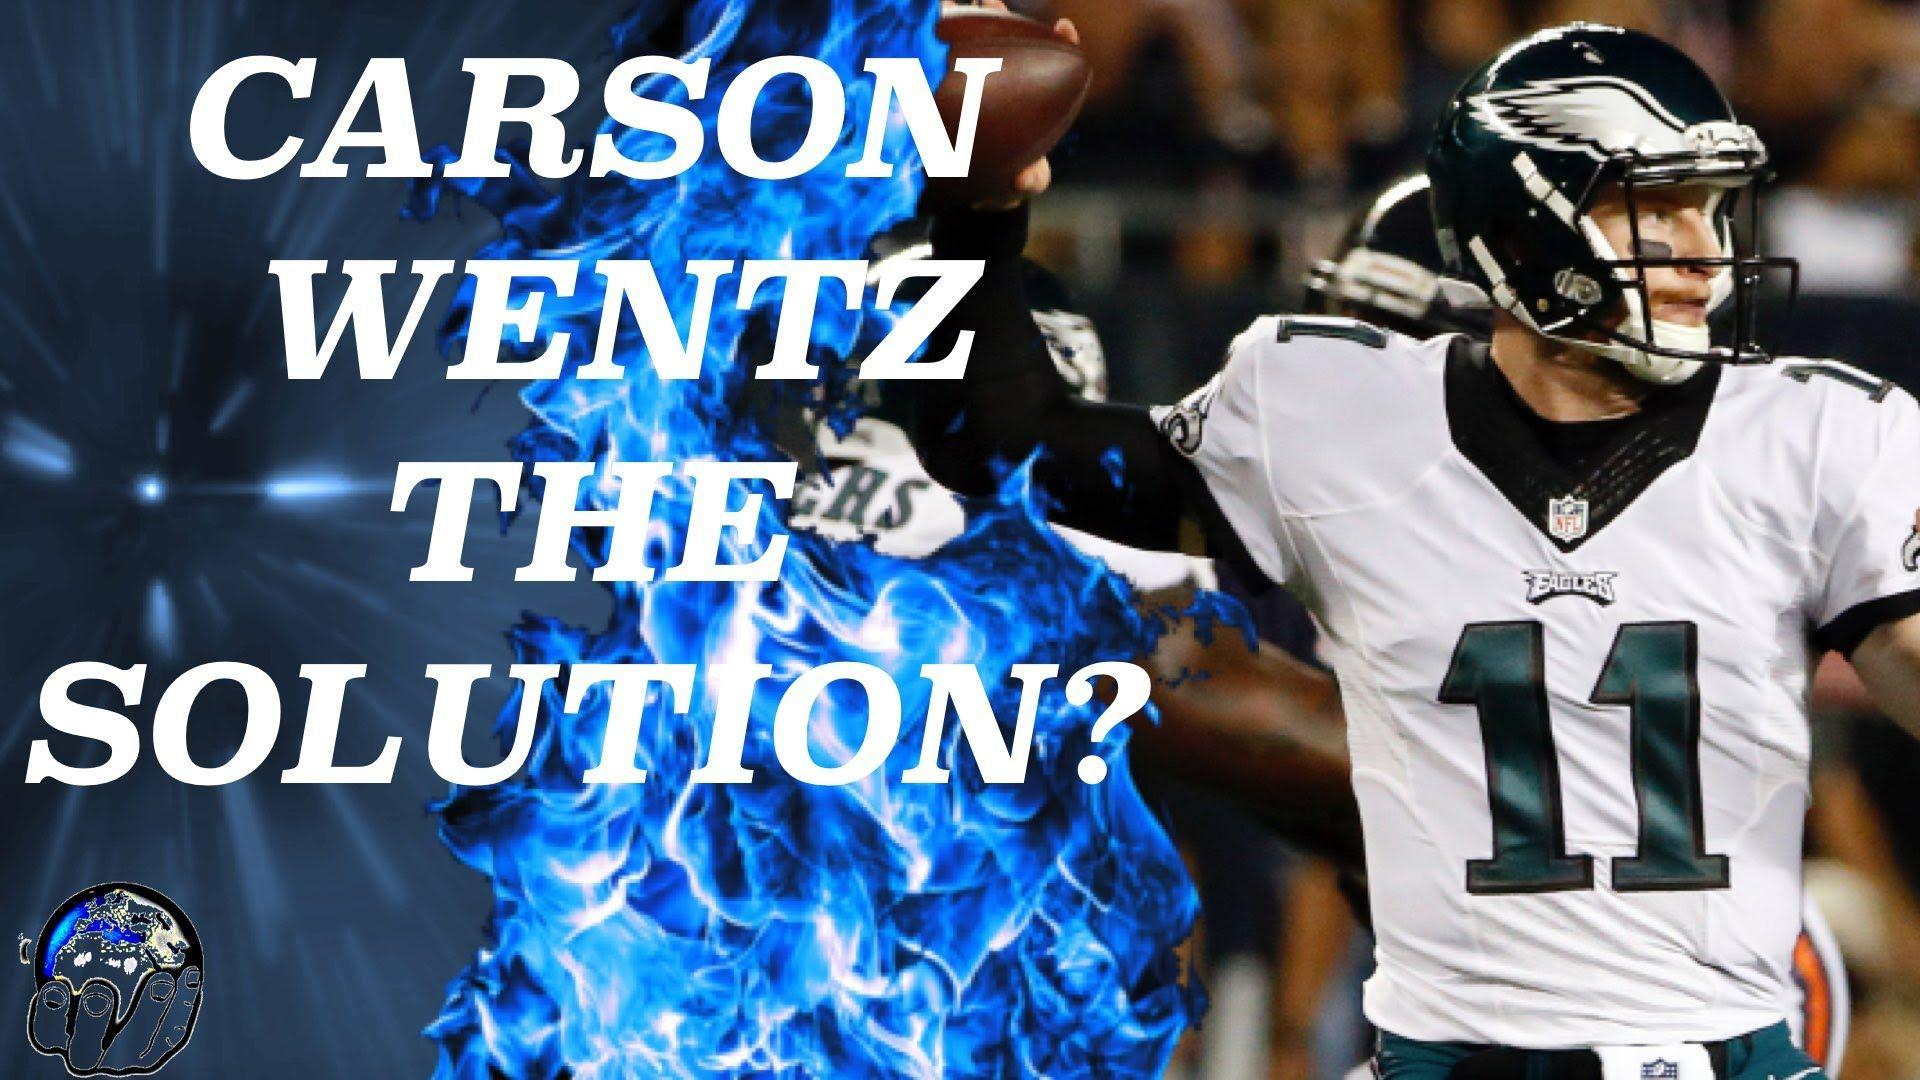 Carson Wentz May Be The Answer For The Eagles | NFL MNF 2016 Week ...